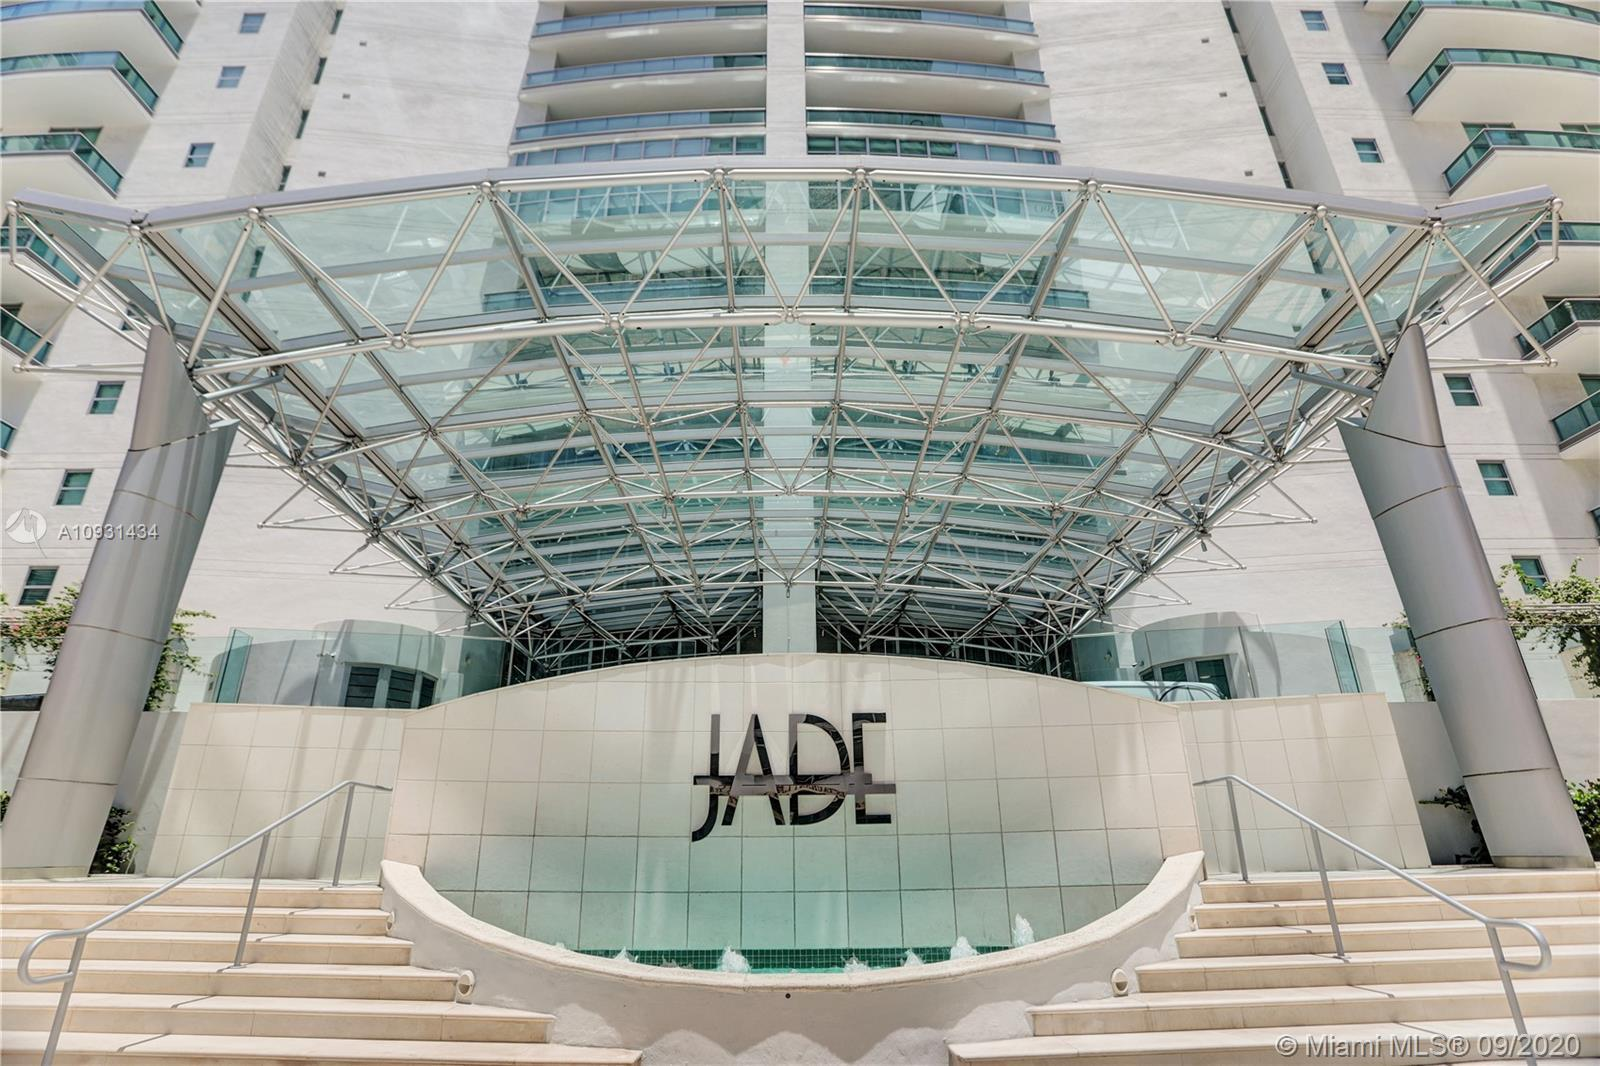 Luxurious, Upscale, Urban living at its best at JADE Residences at Brickell Bay. Unit features priva